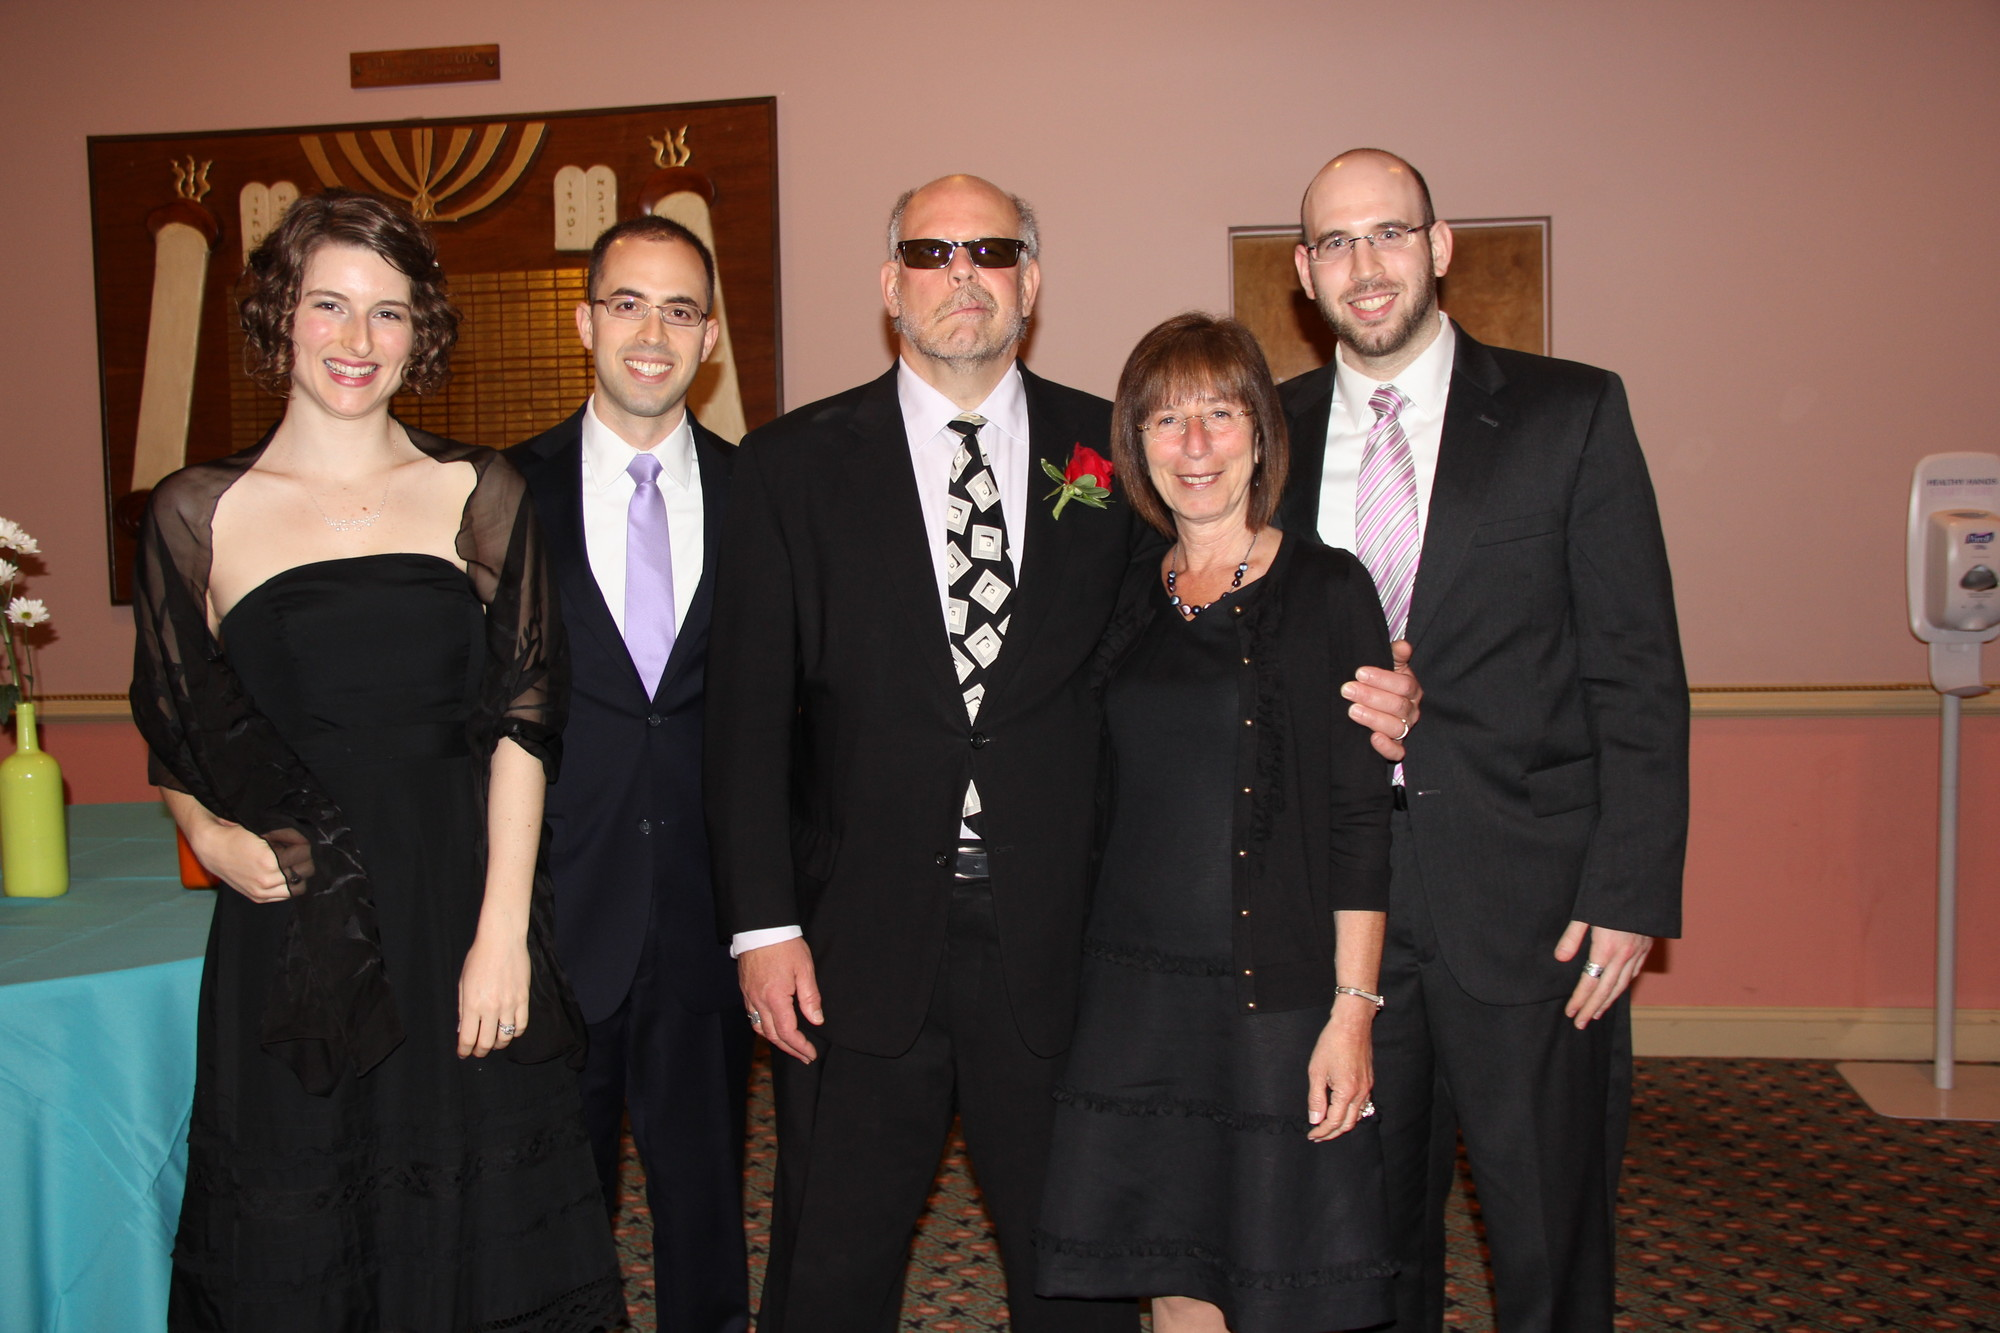 Beth Adler, left, Shai Gruber, Rabbi Marc Gruber, Renee Gruber and Micah